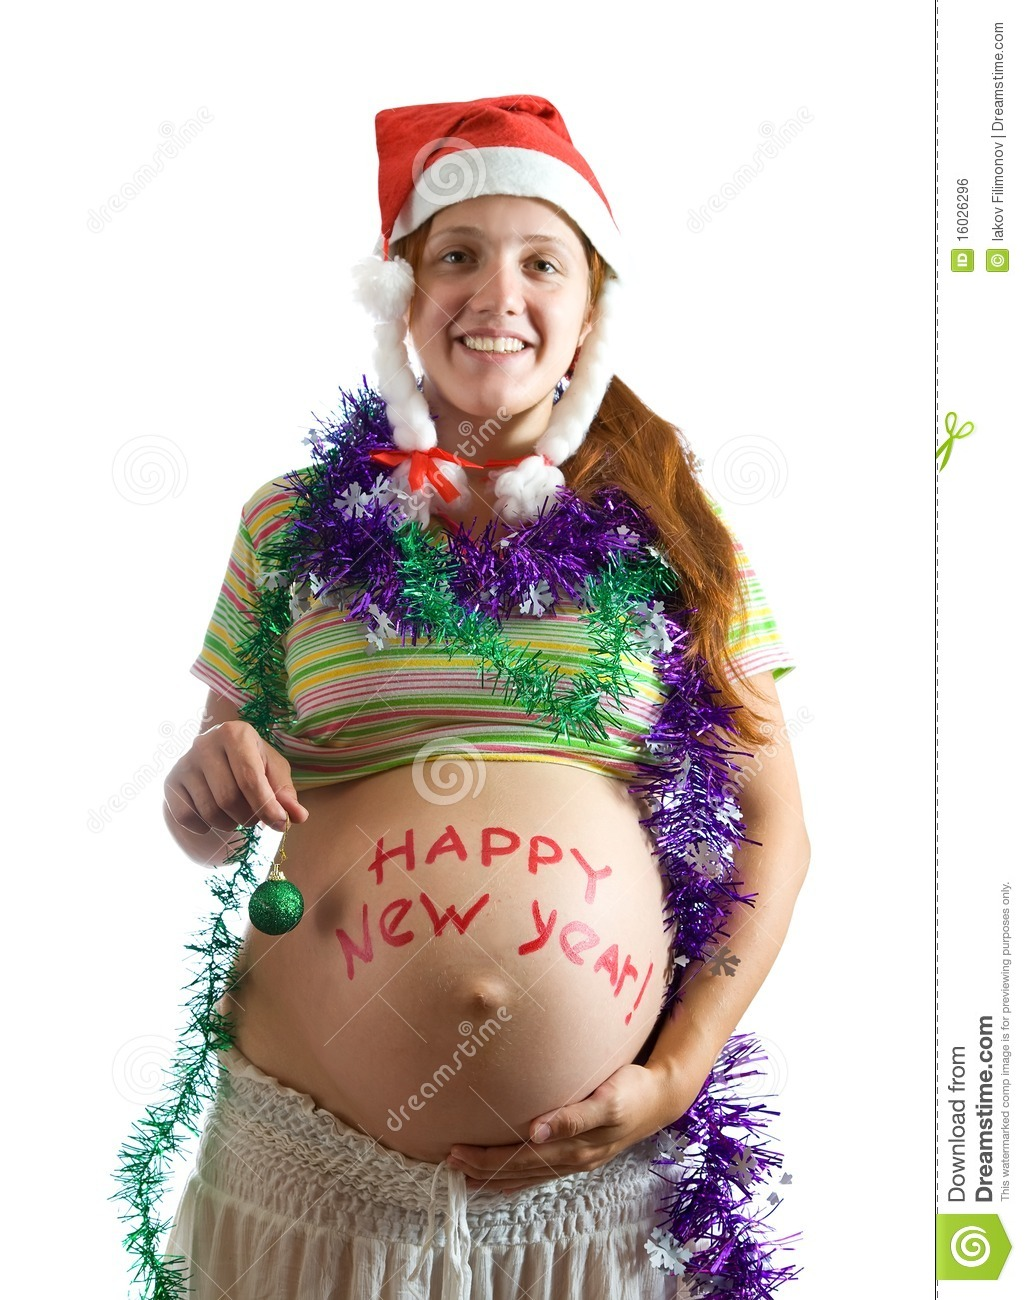 Pregnant Woman In Christmas Attire Royalty Free Stock Image ...